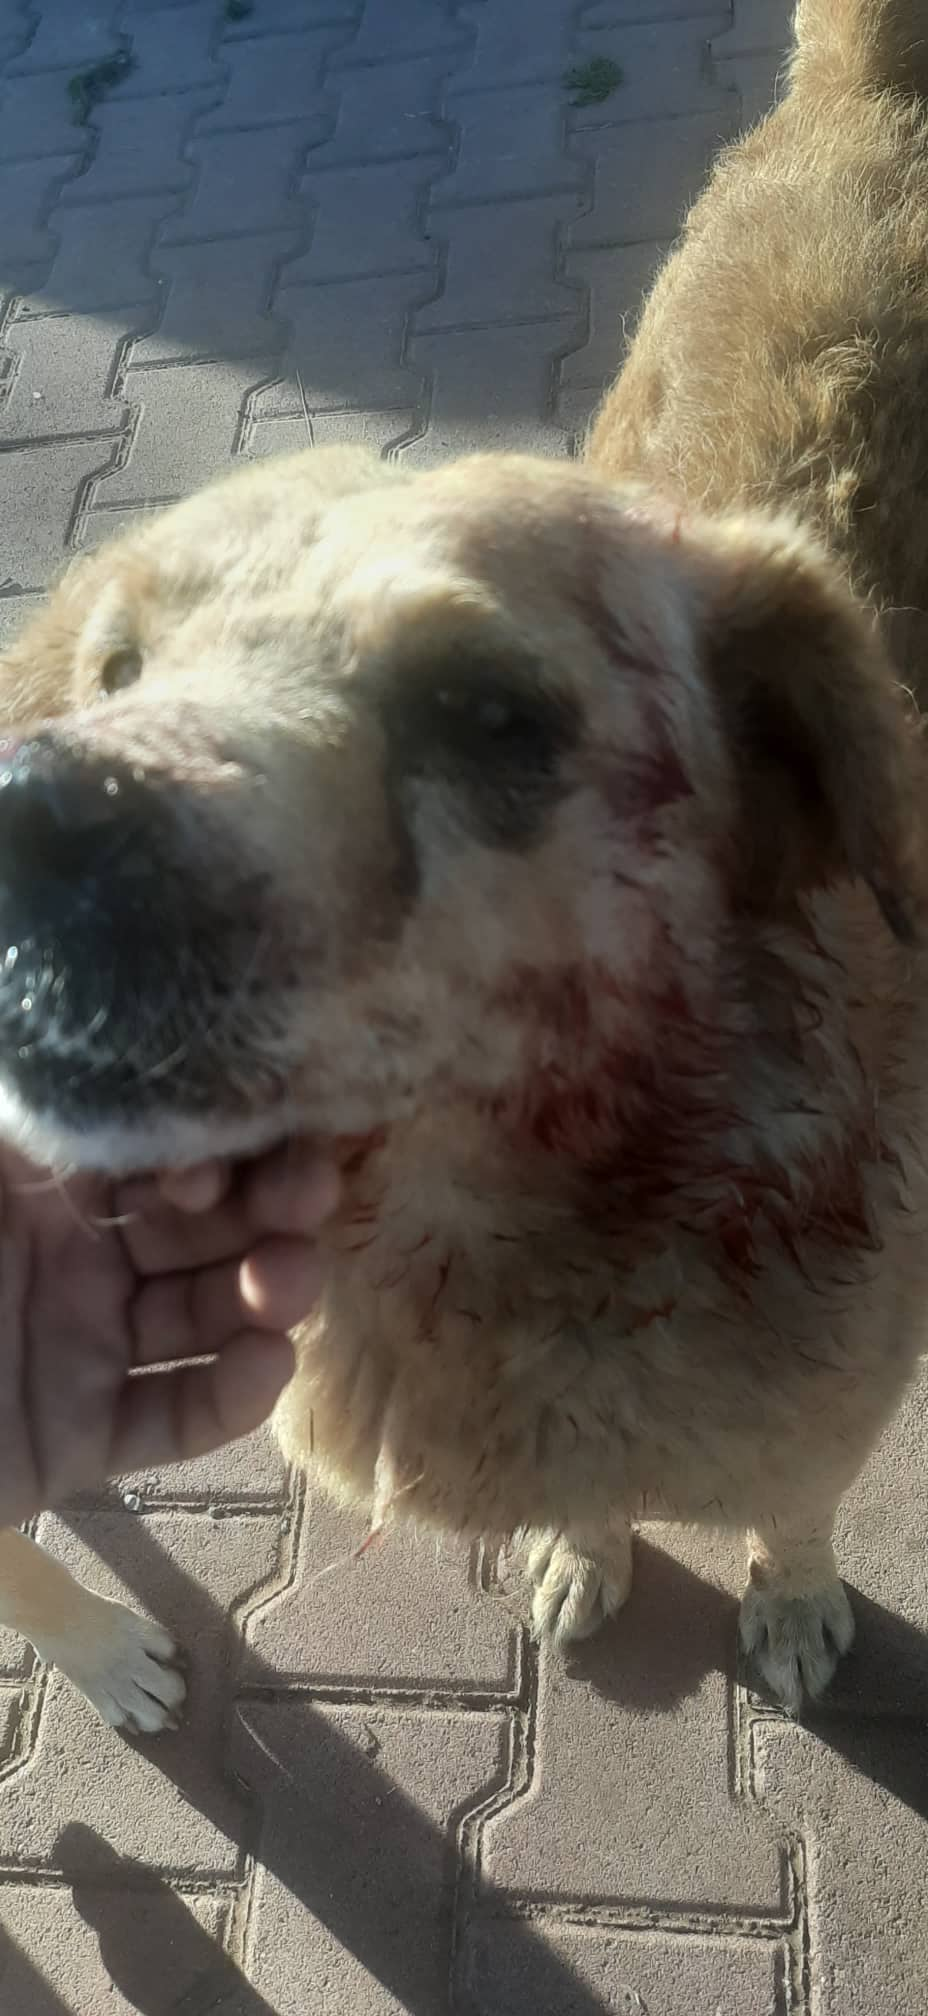 Moroccan Authorities Slaughter 80 Stray Dogs Despite Reforms